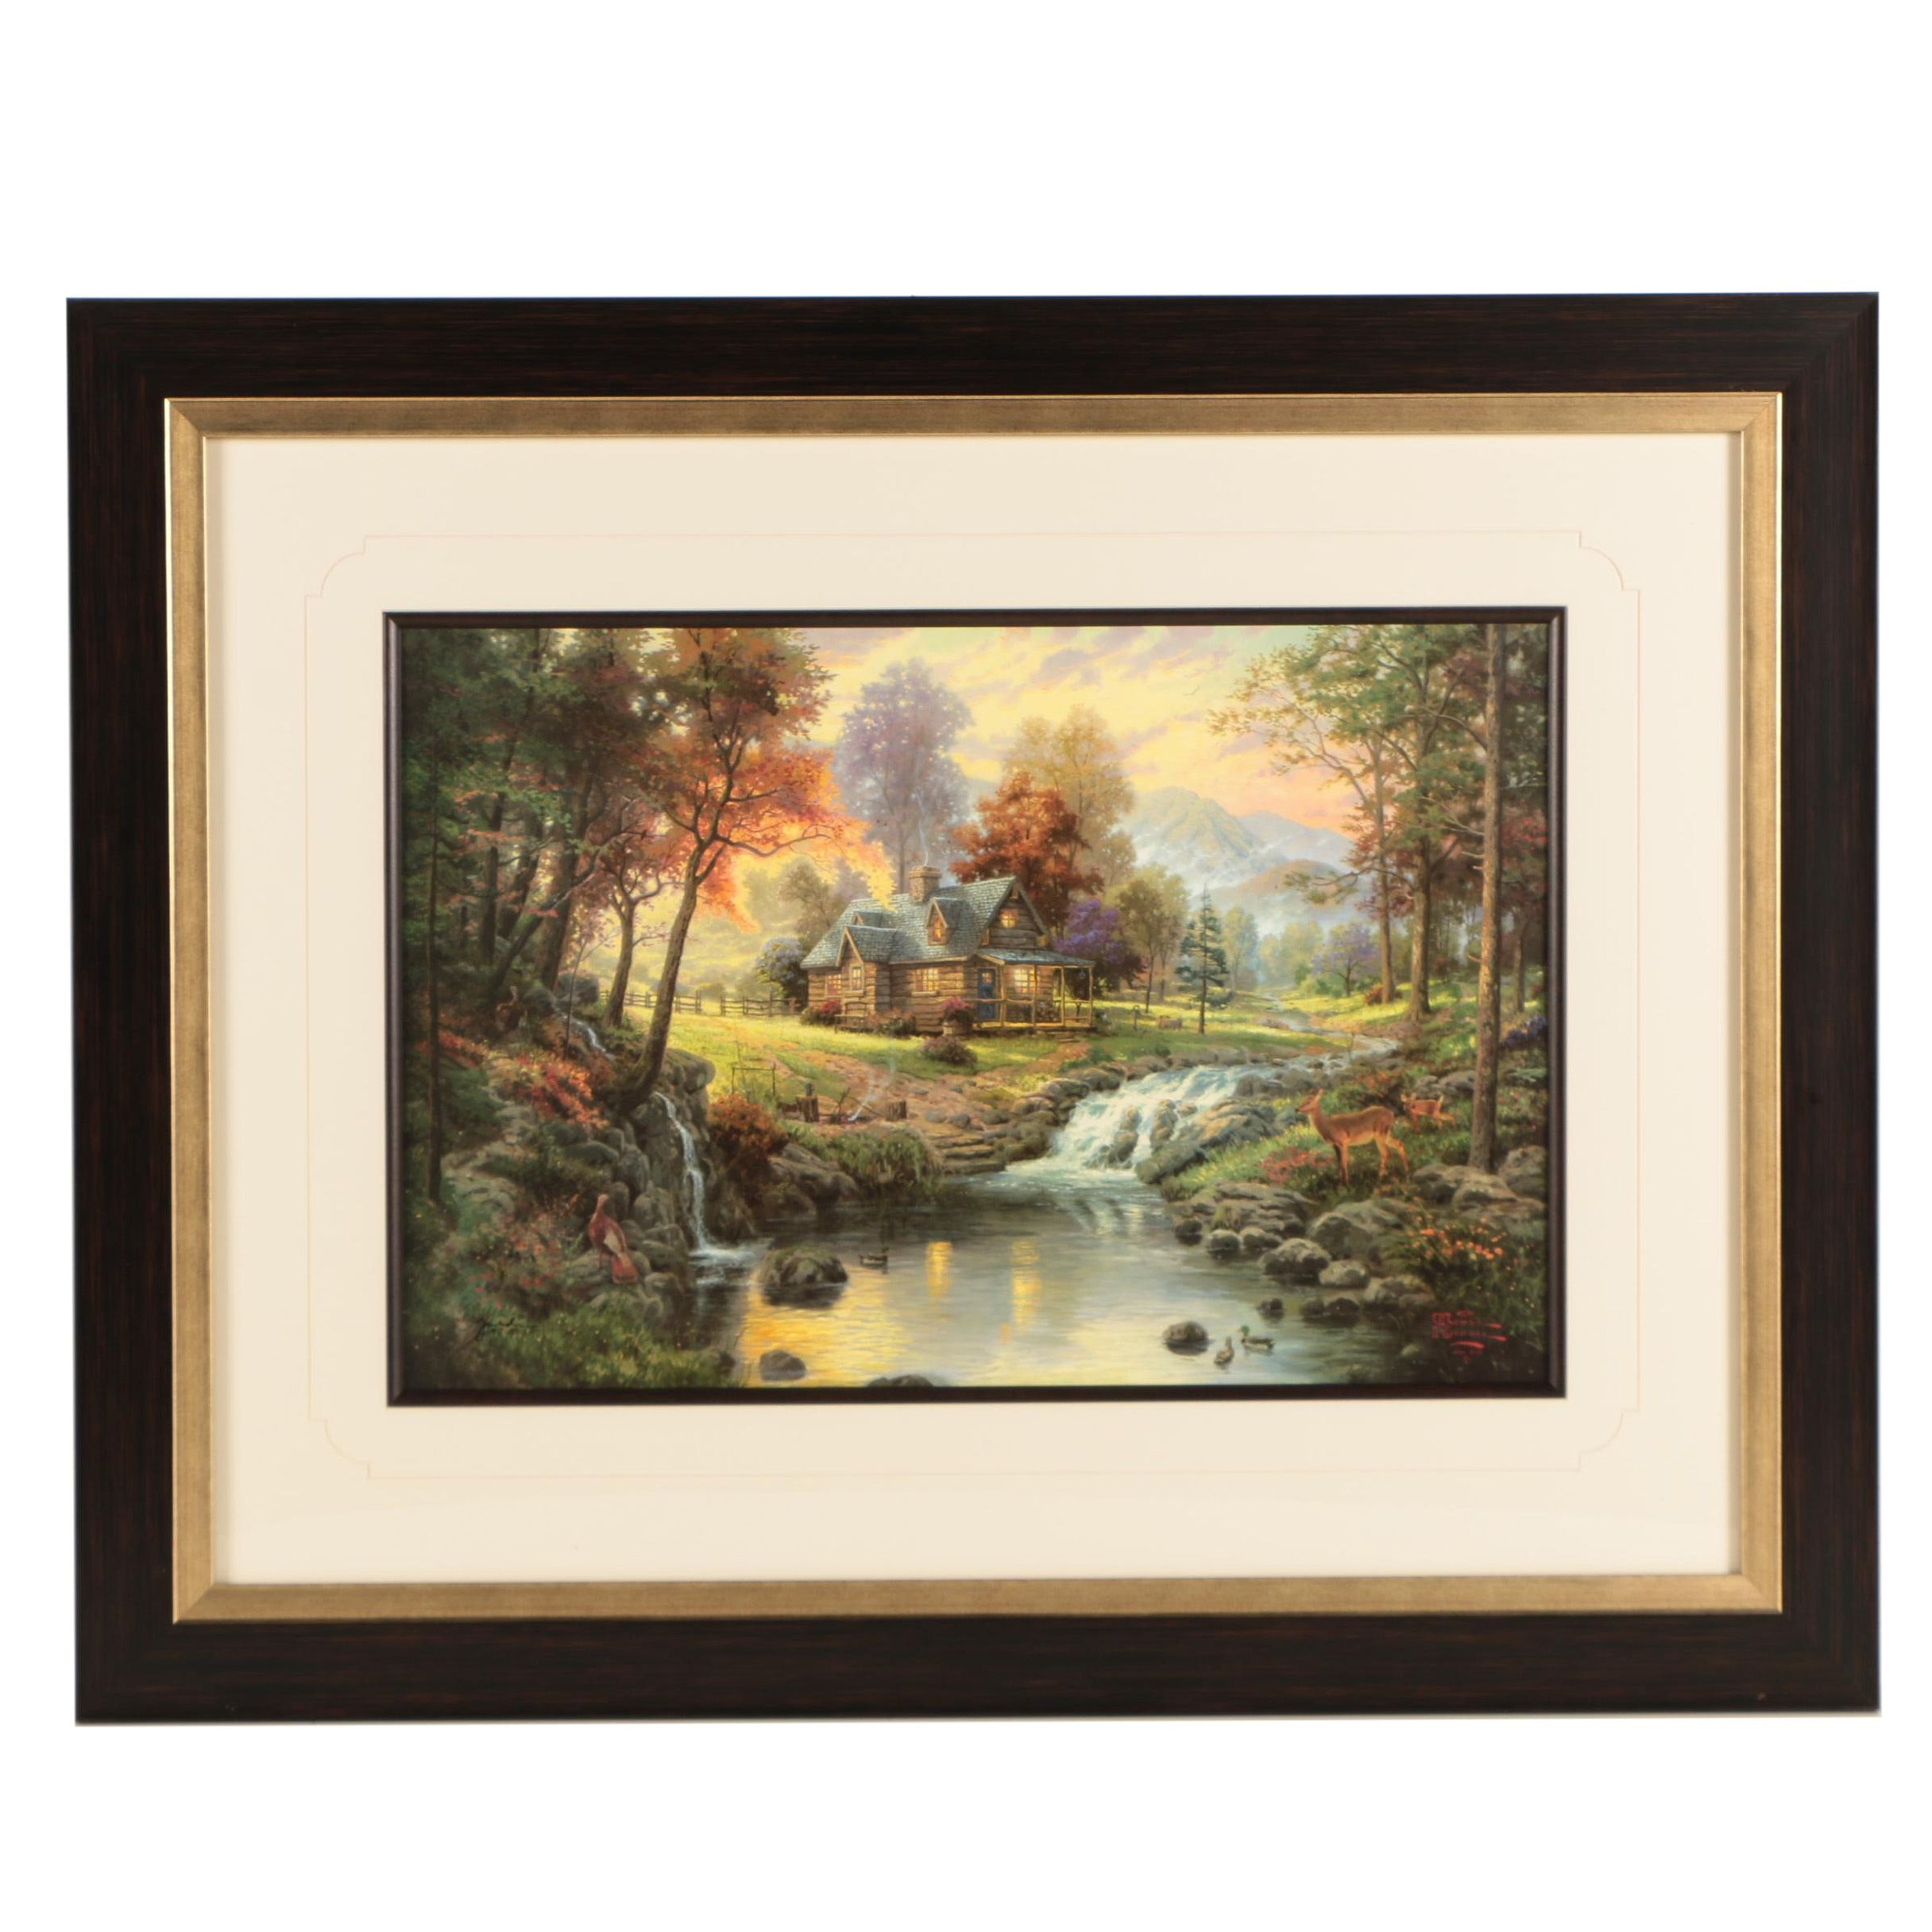 "Thomas Kinkade Limited Edition Offset Lithograph ""Mountain Retreat"""